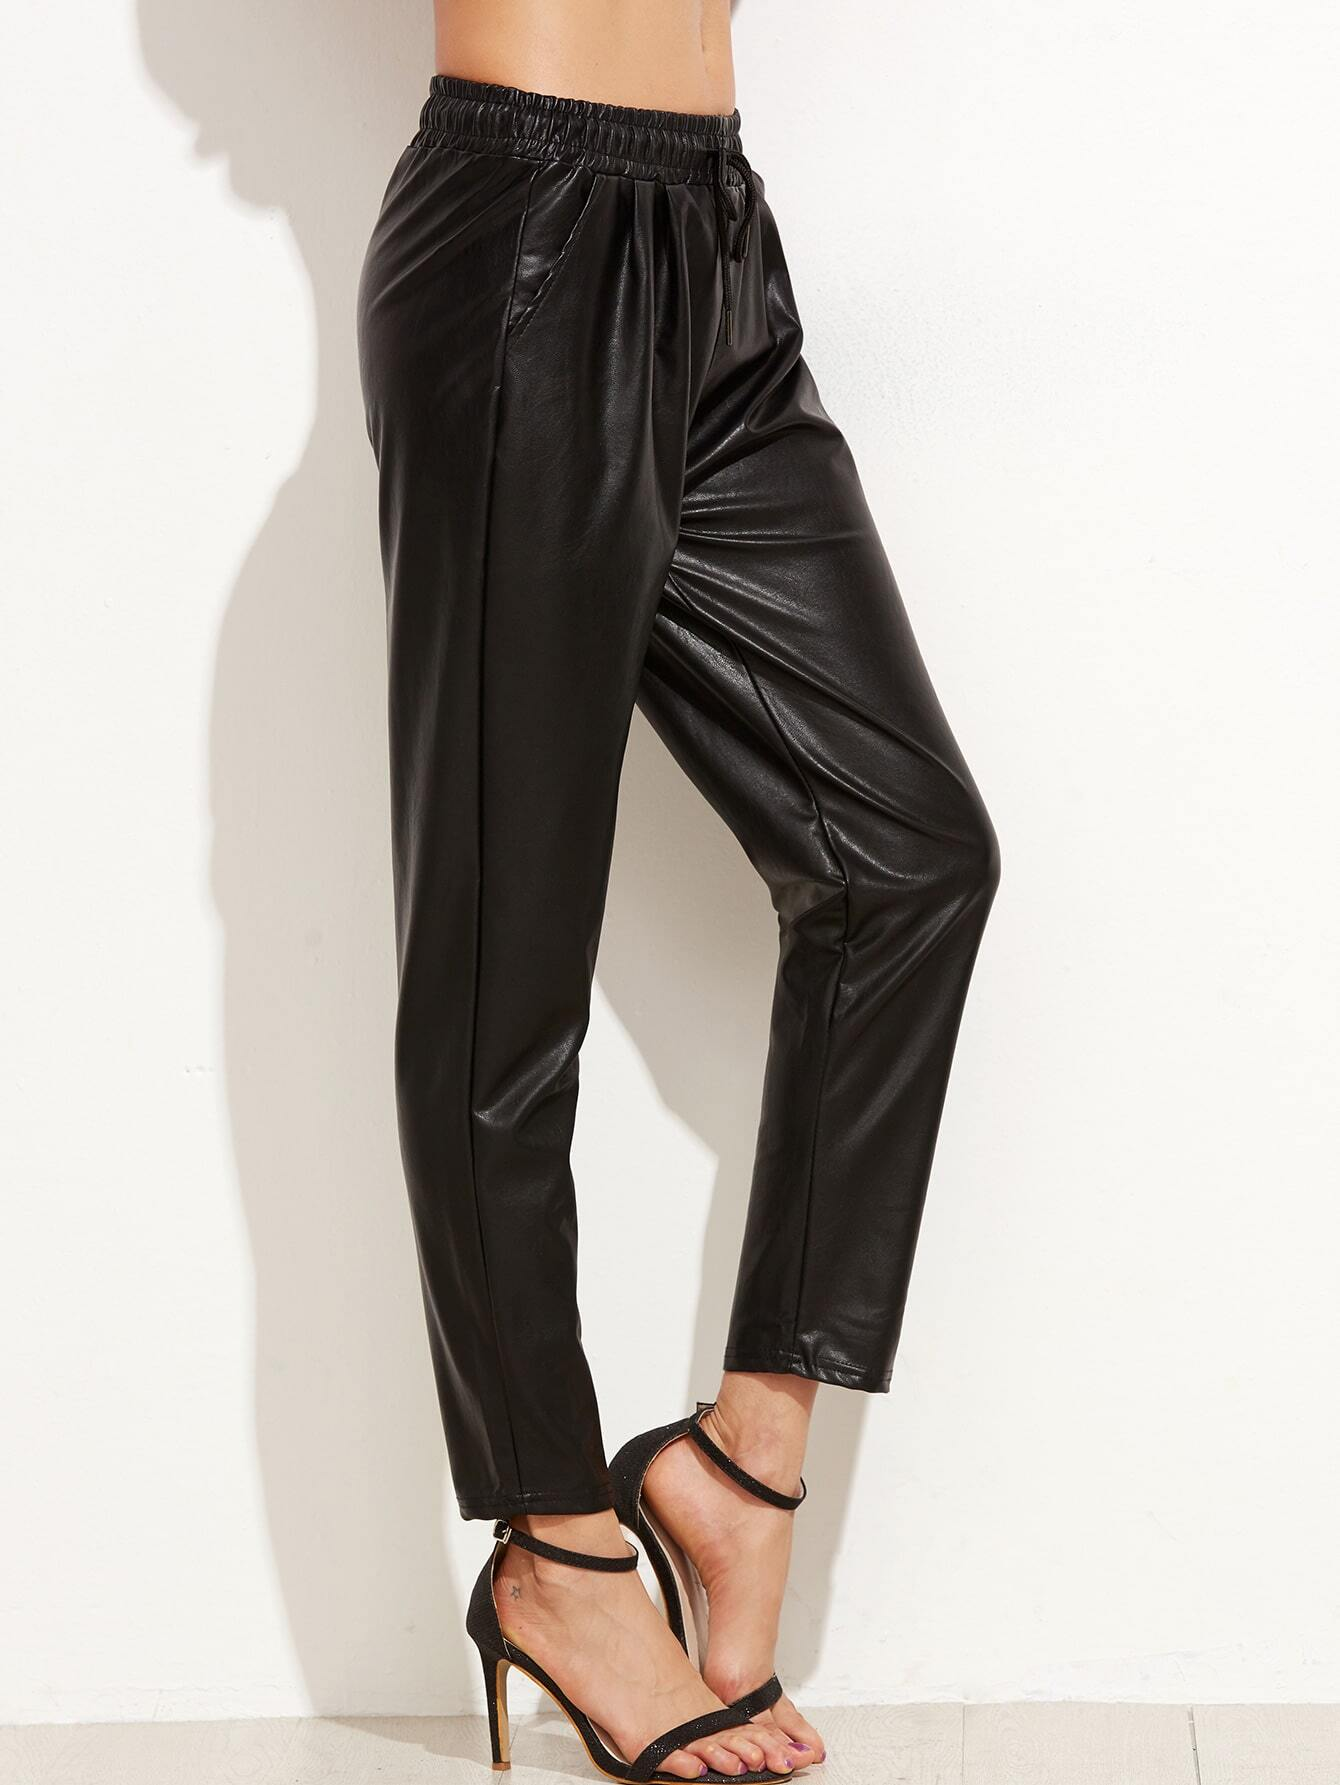 great deals thoughts on 60% discount Black Faux Leather Drawstring Pants